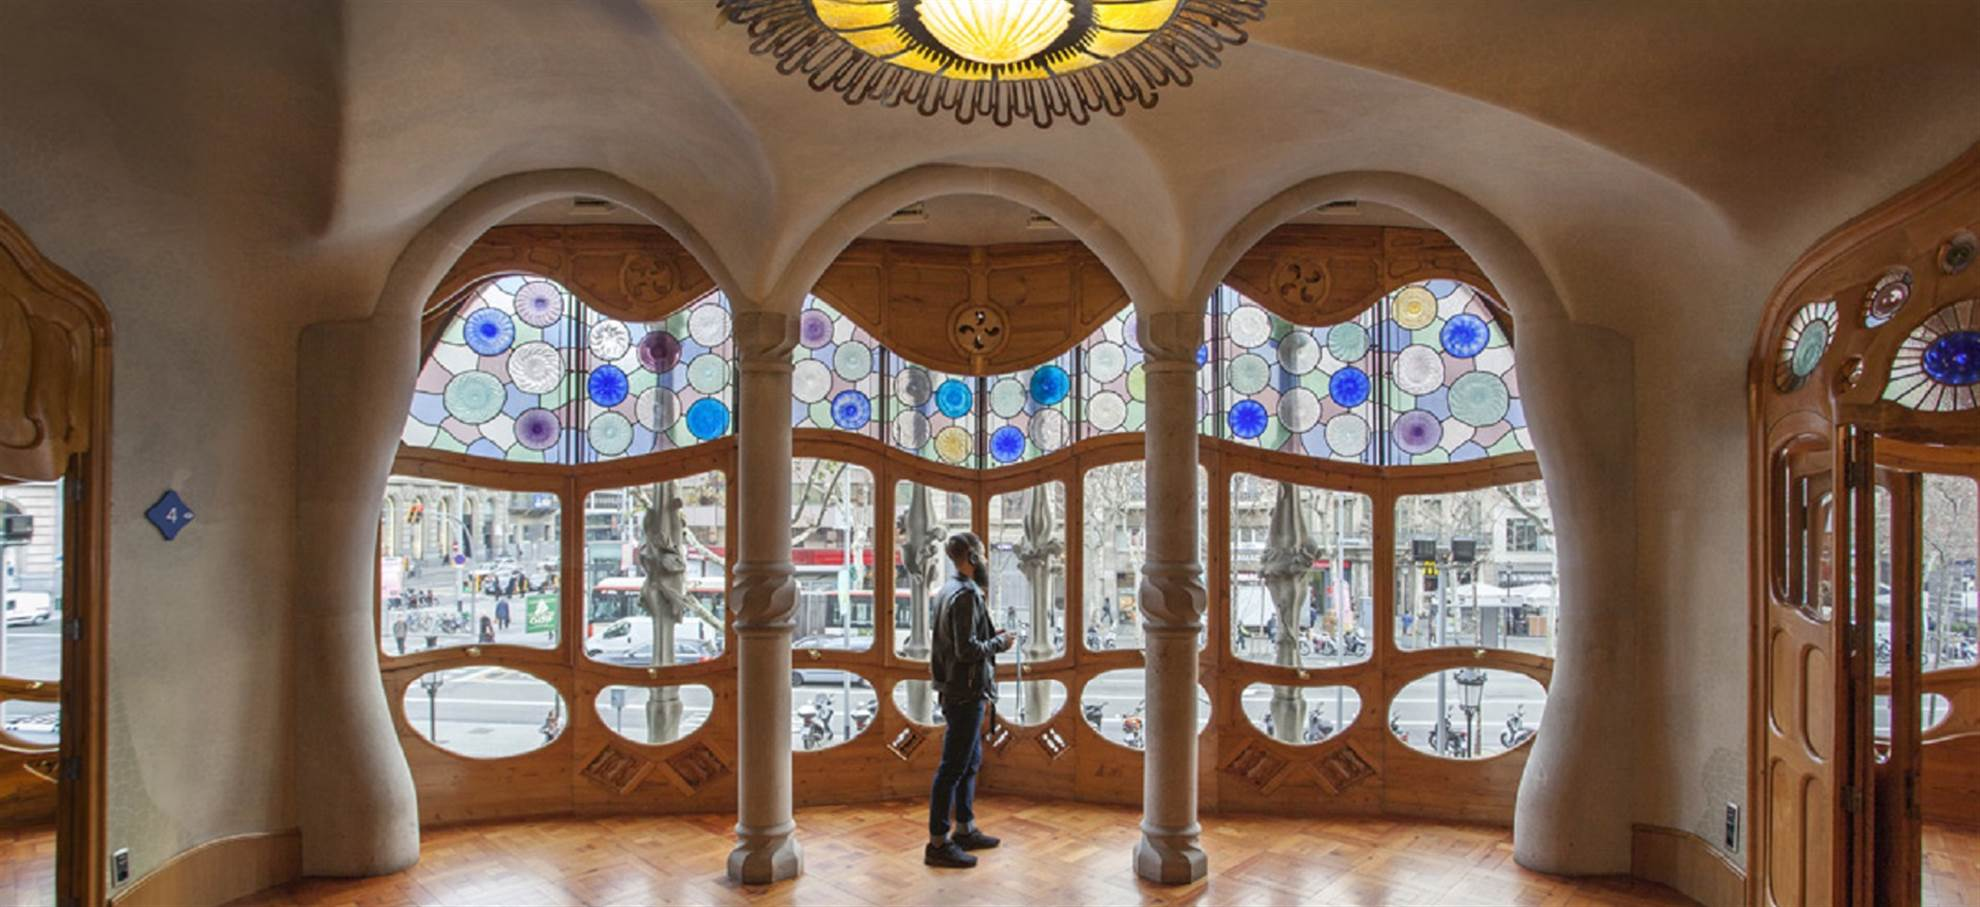 Casa Batlló - Early Bird Tickets